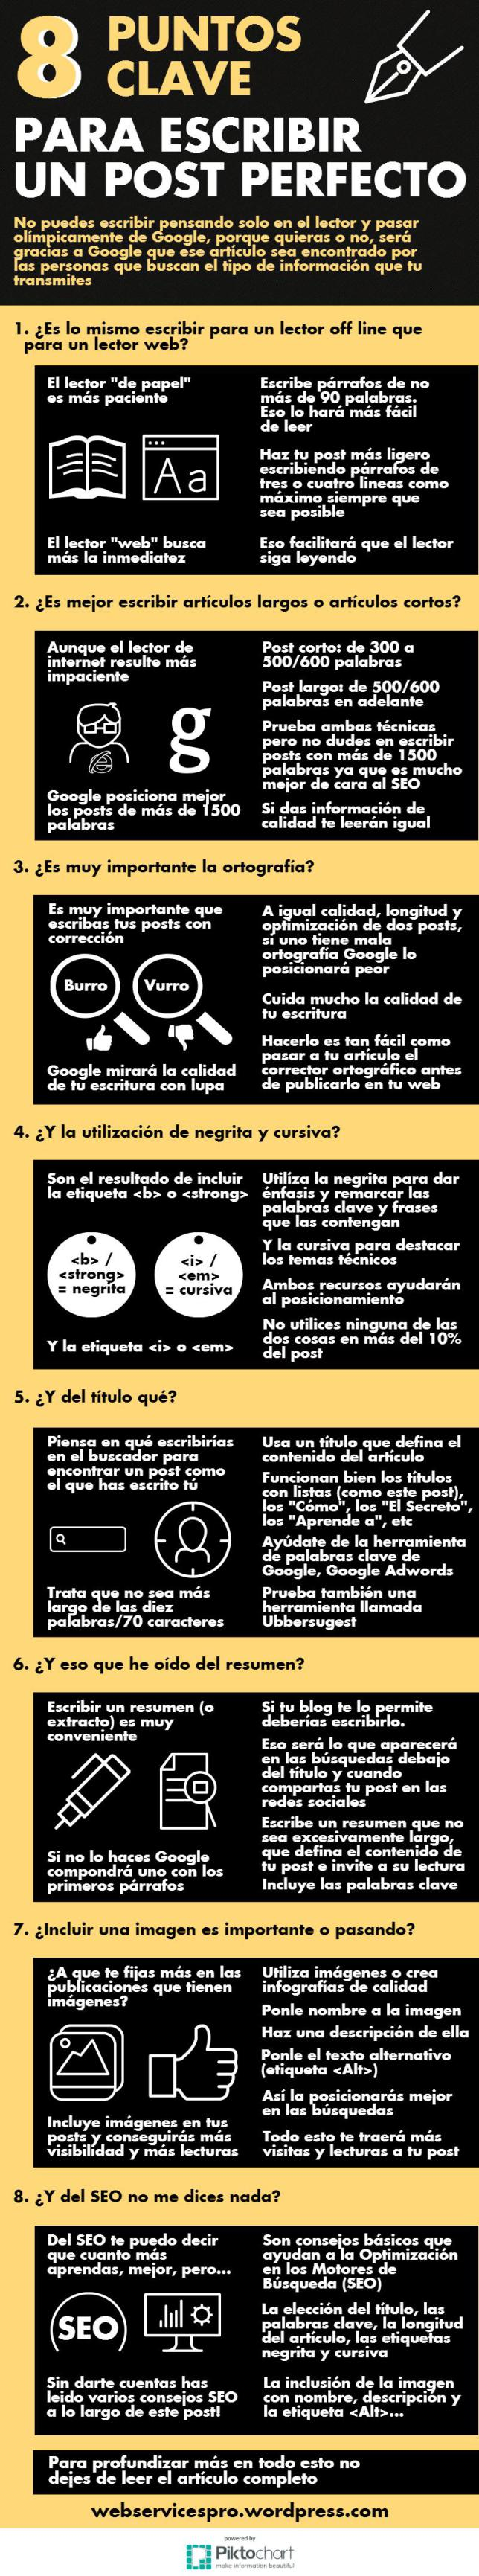 8 puntos claves para escribir un post perfecto